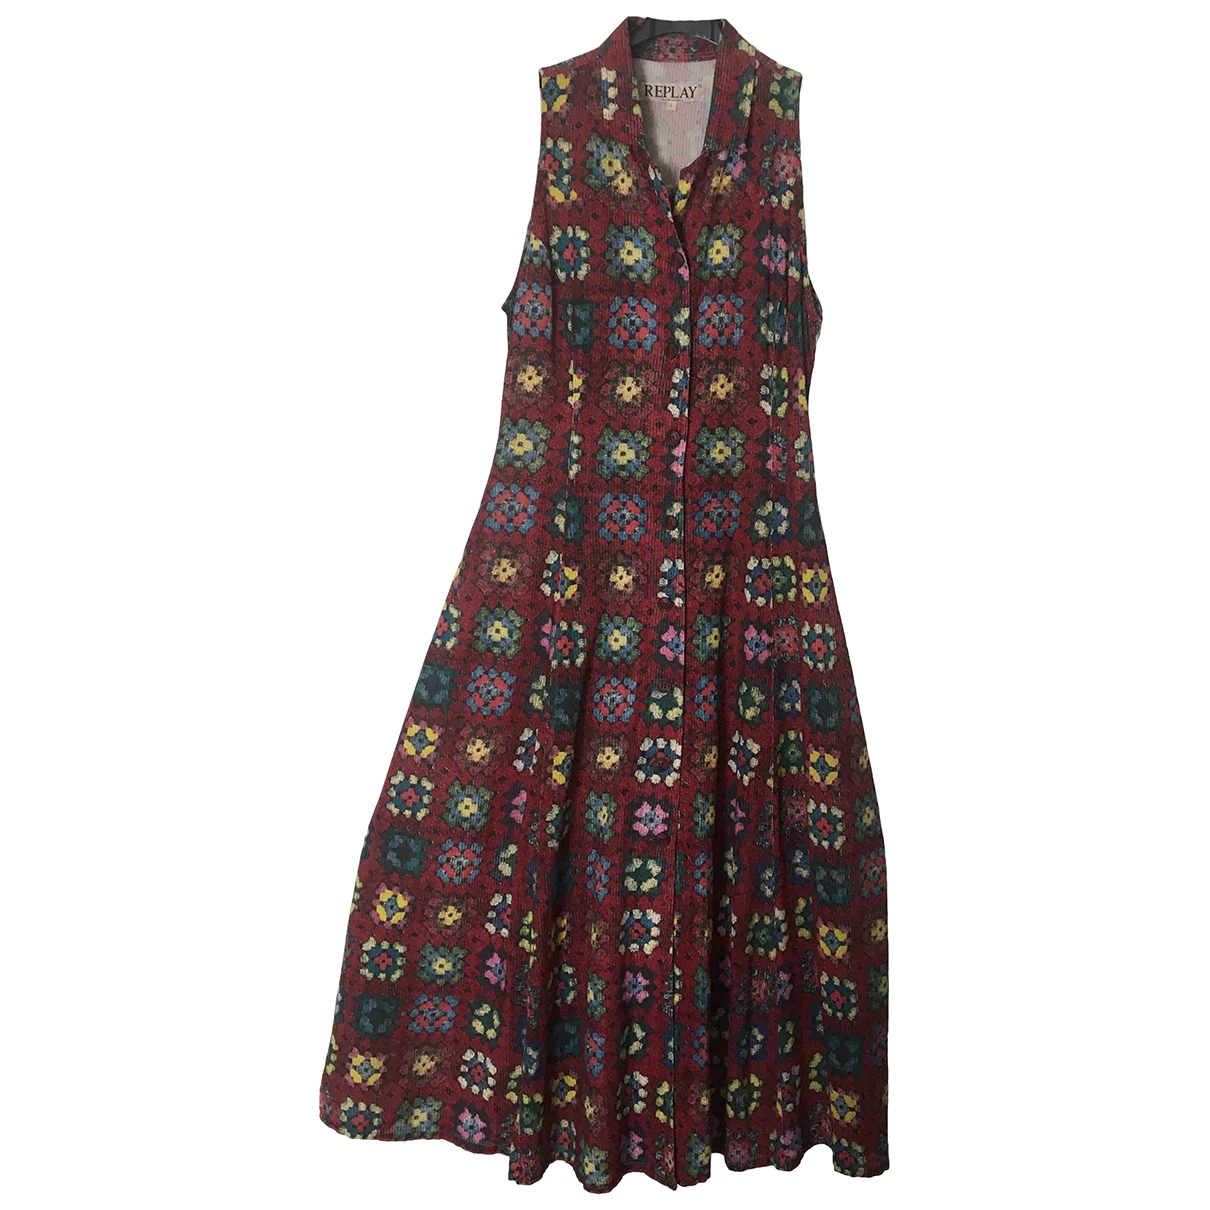 Replay \N Brown Cotton dress for Women 44 IT